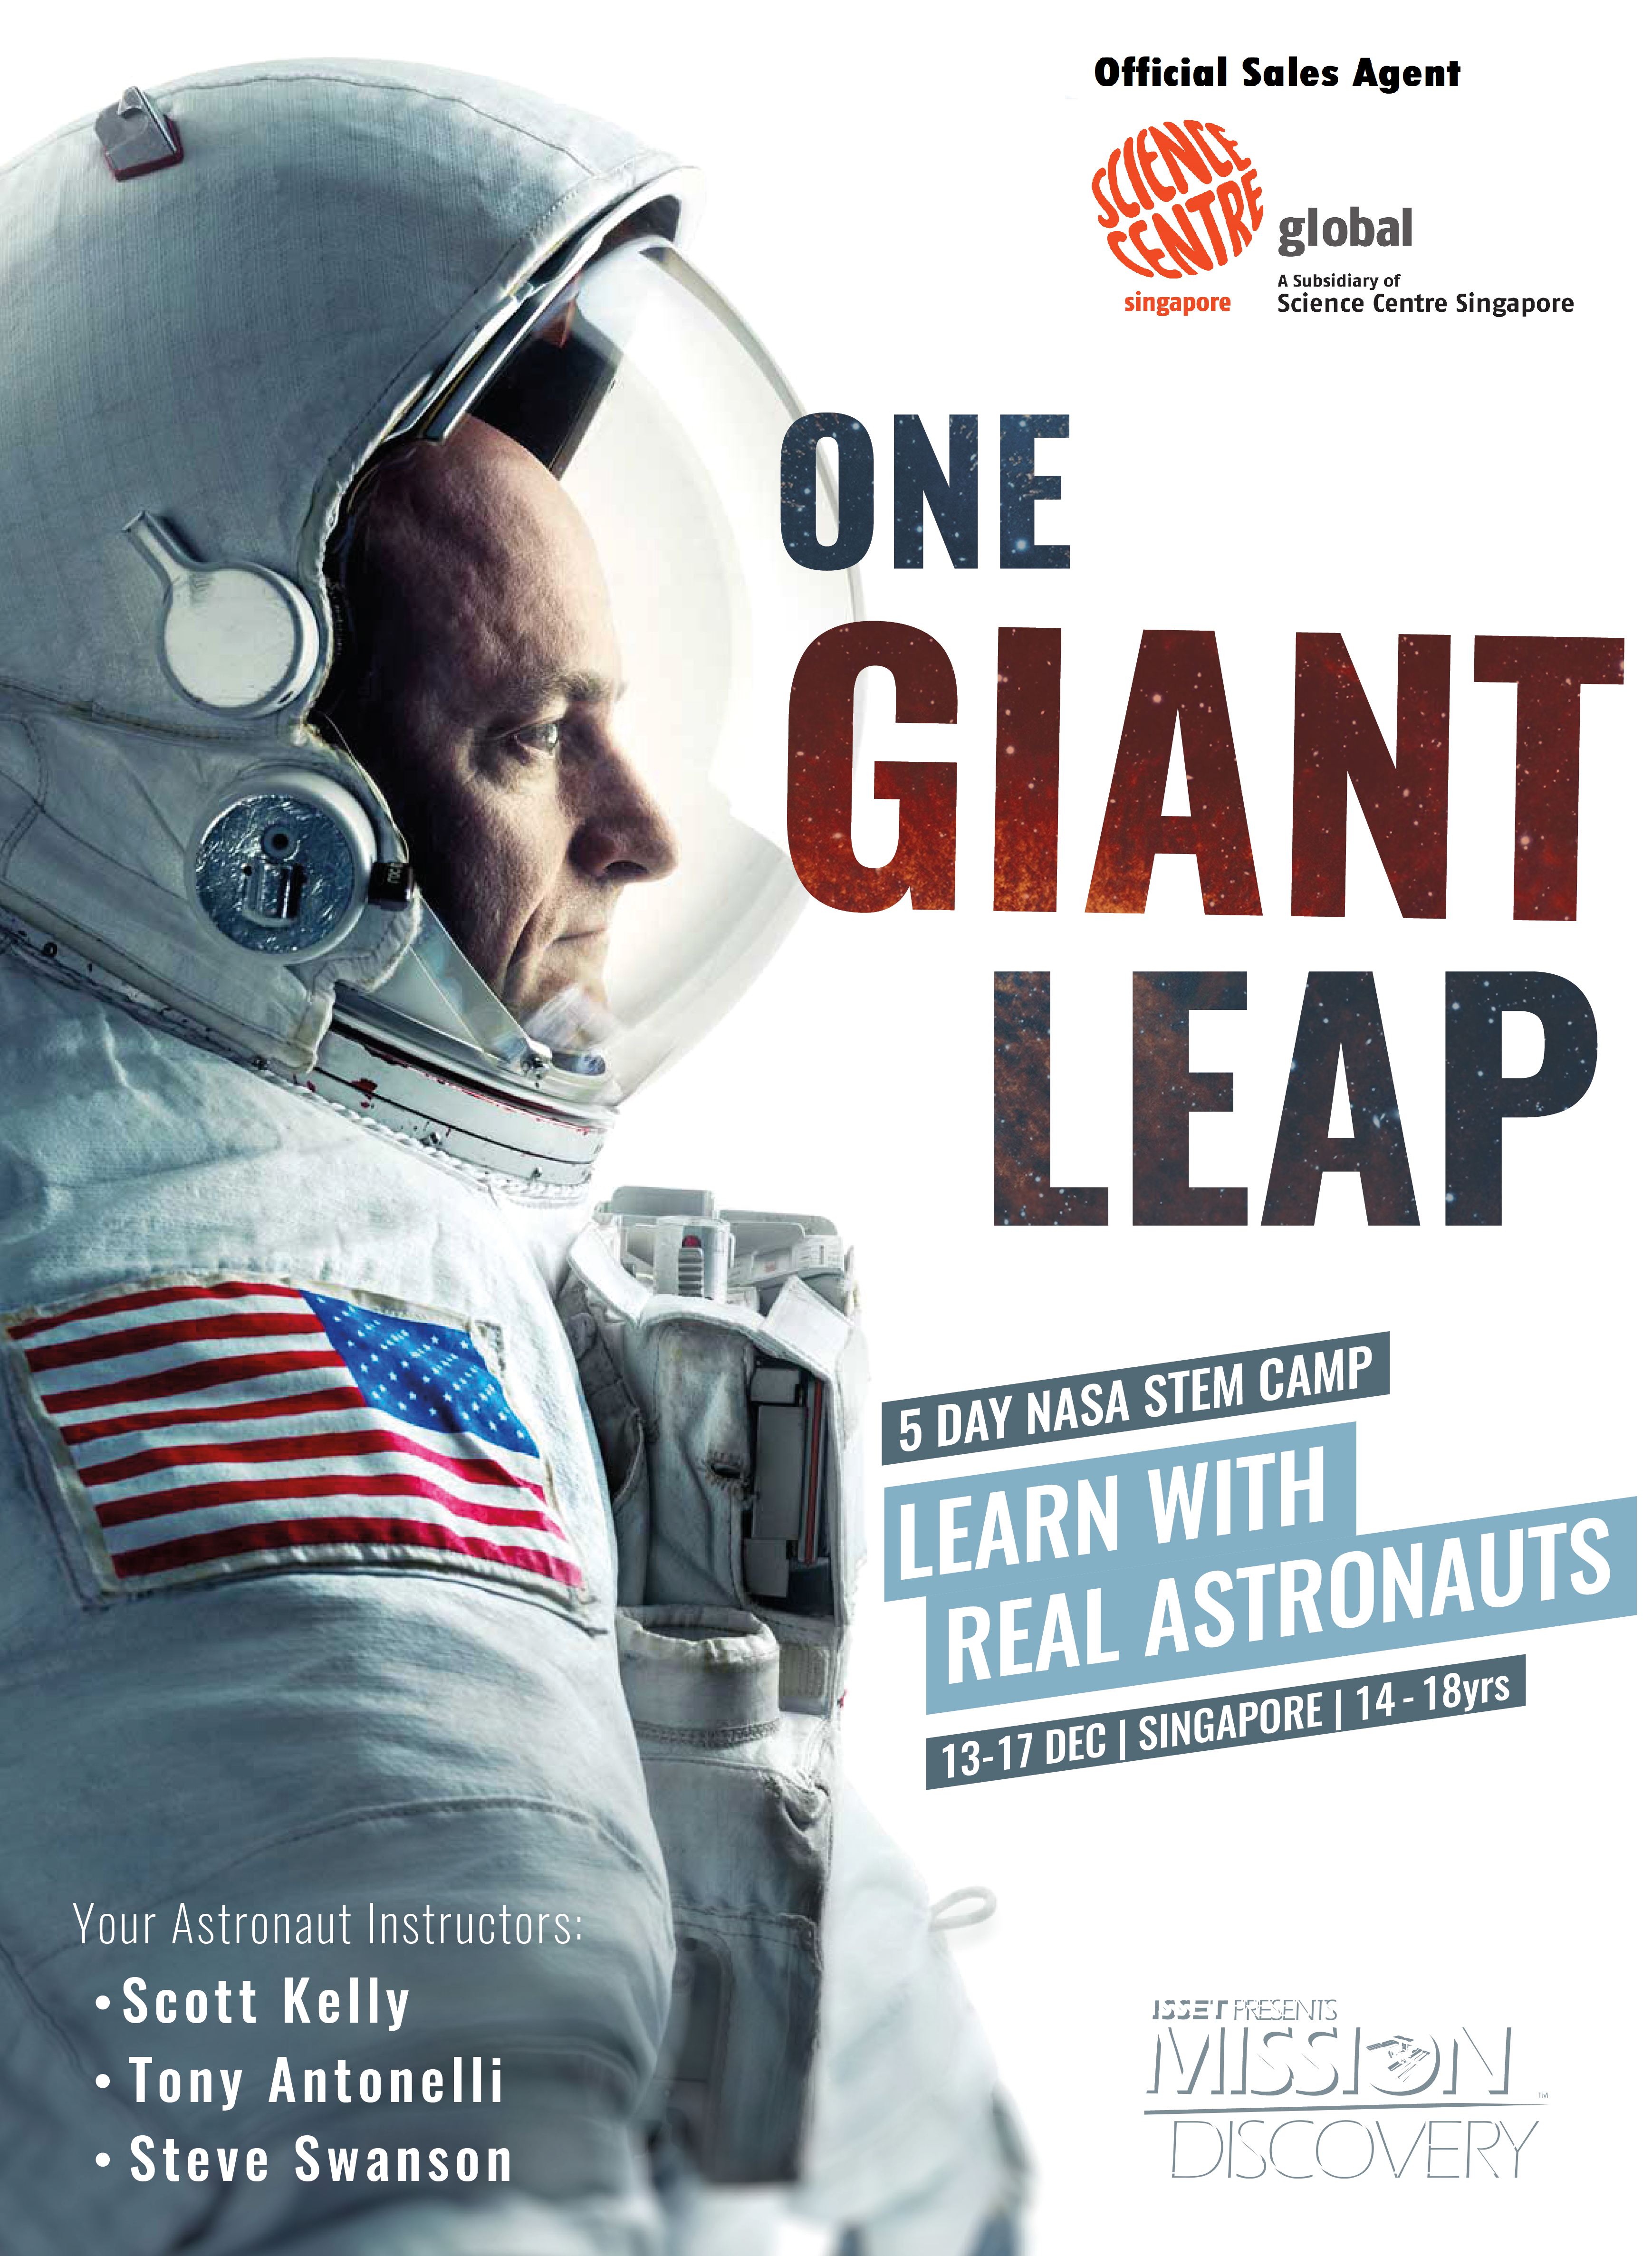 One Giant Leap with address